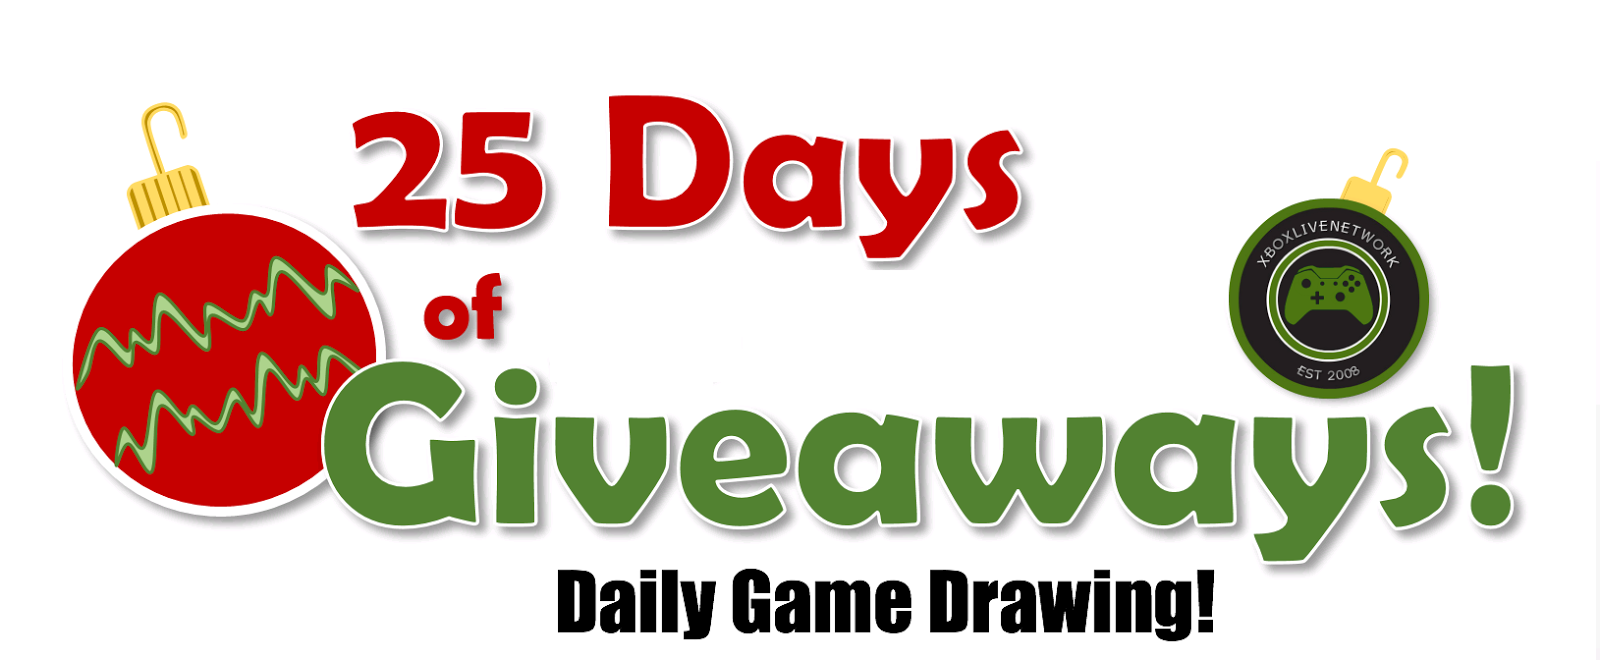 25 days of christmas giveaway xboxlivenetwork by team xbln